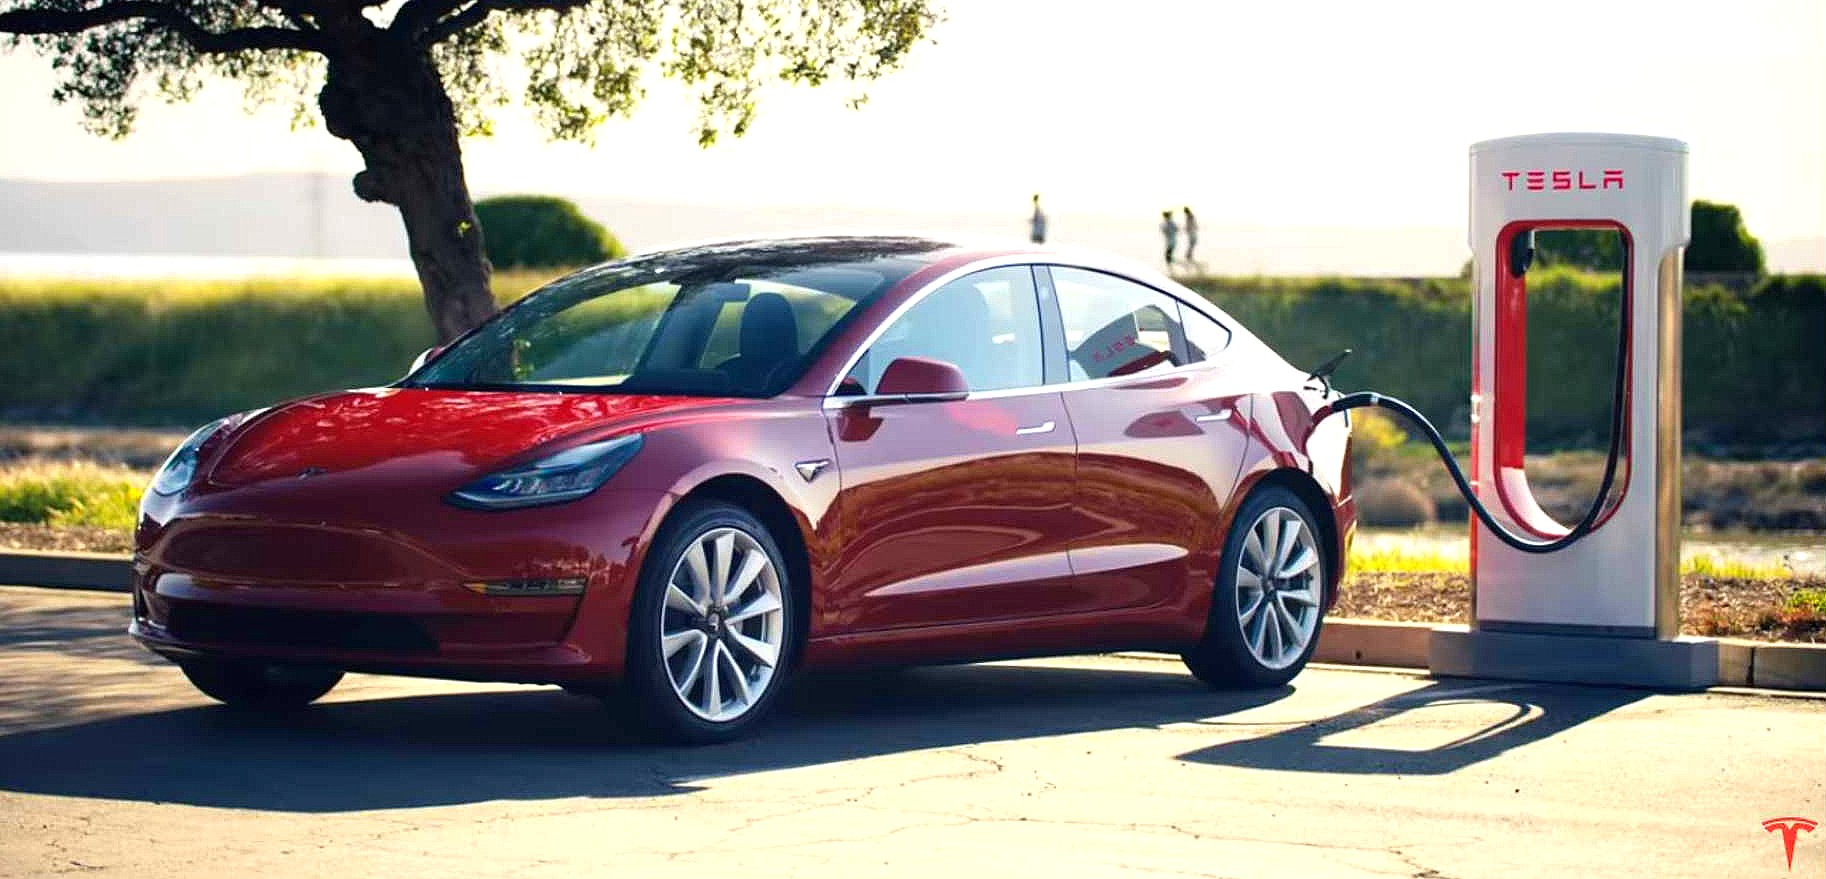 Tesla model 3 cars,now made in China